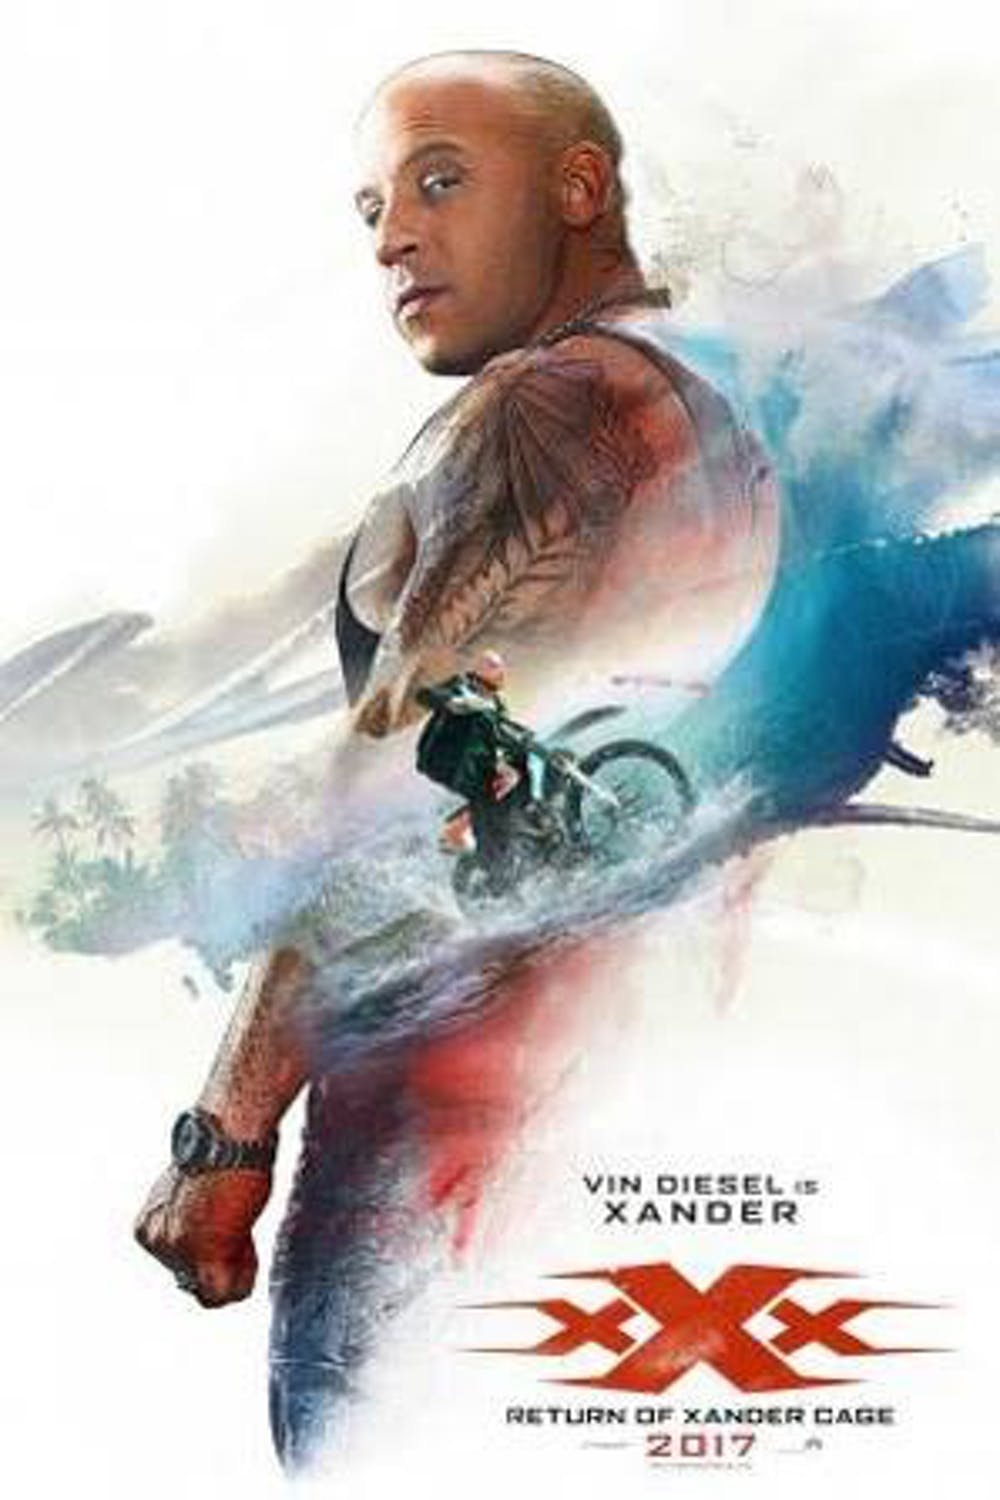 xXx: Return of Xander Cage delivers with ridiculous but colorful action sequences